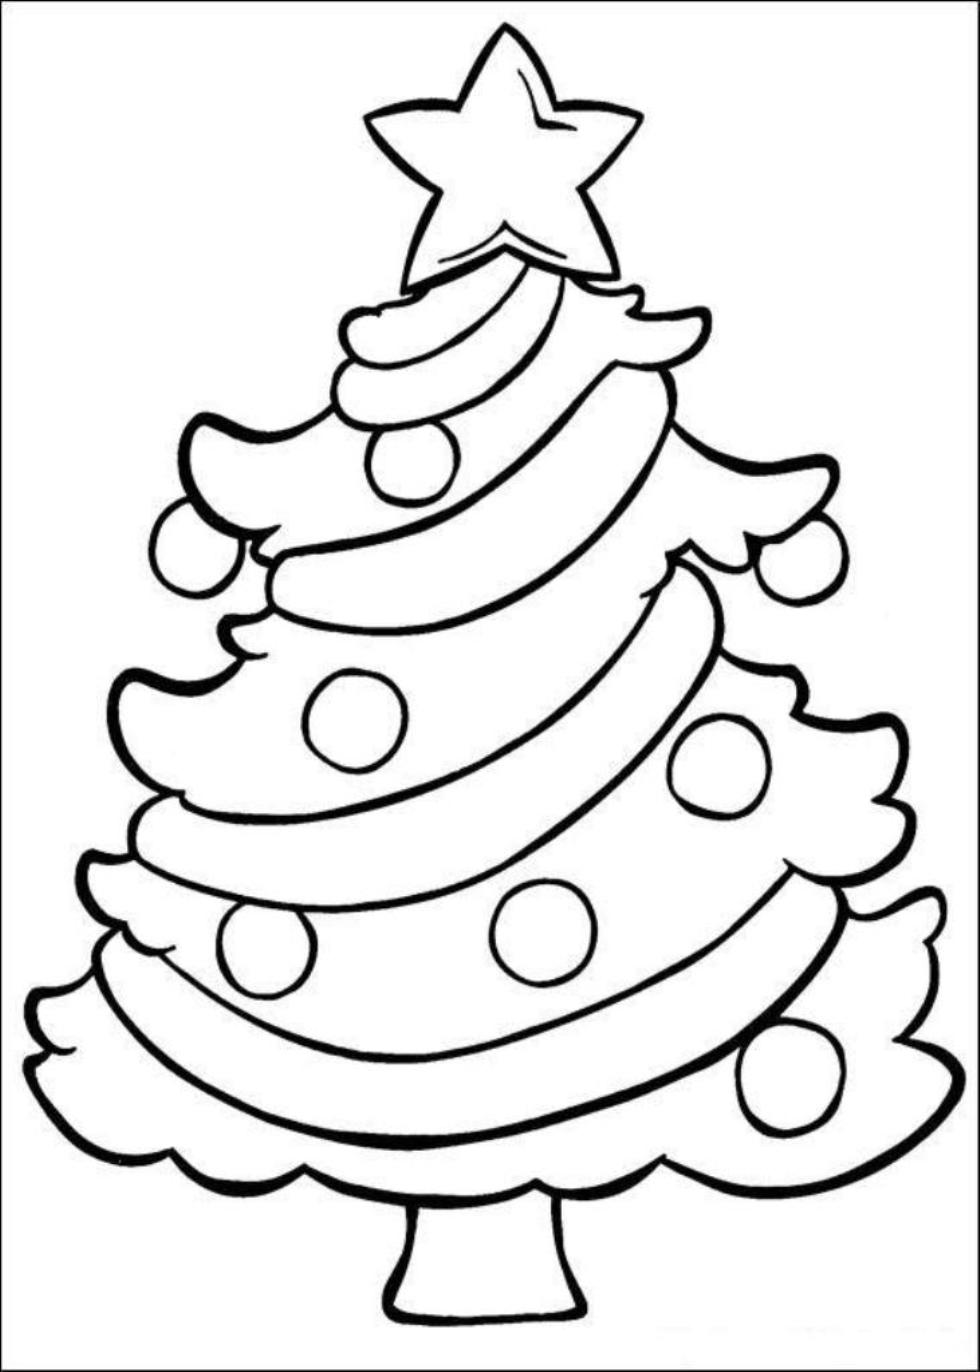 980x1372 christmas tree coloring page - Christmas Tree Coloring Sheets